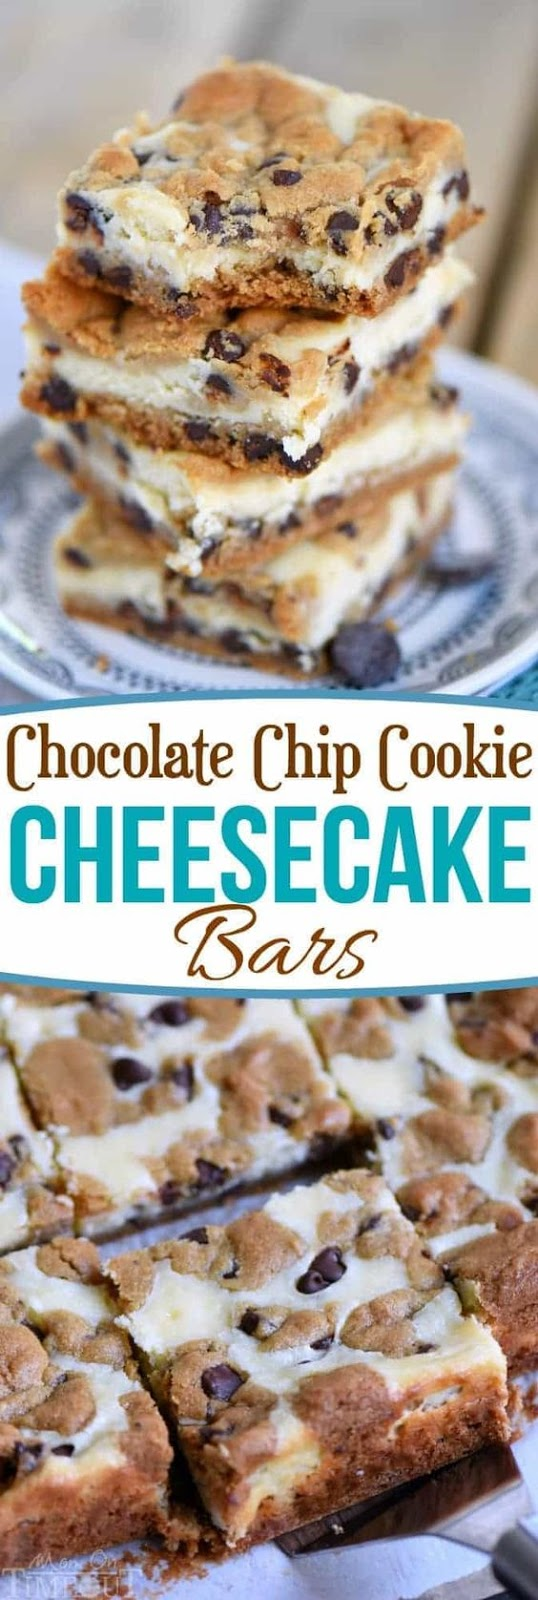 CHOCOLATE CHIP COOKIE CHEESECAKE BARS #recipes #dessertrecipes #easyrecipes #easydessertrecipes #food #foodporn #healthy #yummy #instafood #foodie #delicious #dinner #breakfast #dessert #lunch #vegan #cake #eatclean #homemade #diet #healthyfood #cleaneating #foodstagram